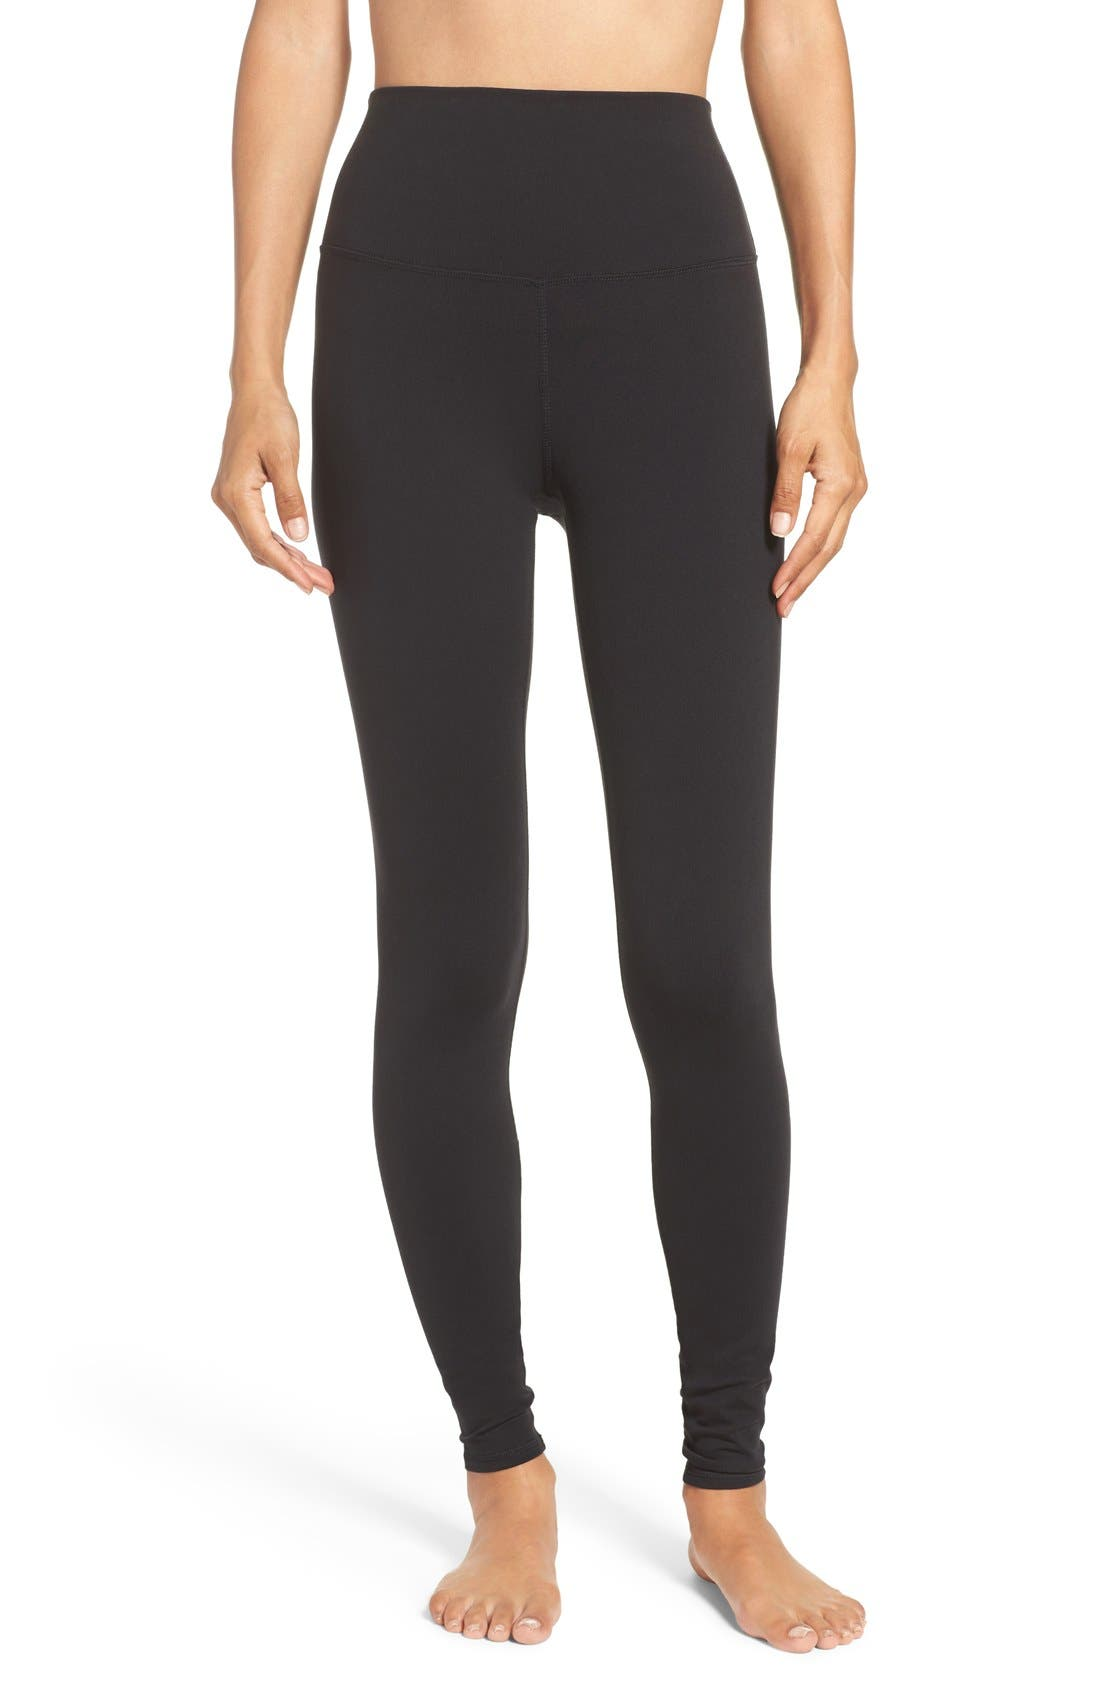 70fae441358d3 Women's Alo Workout Clothes & Activewear   Nordstrom